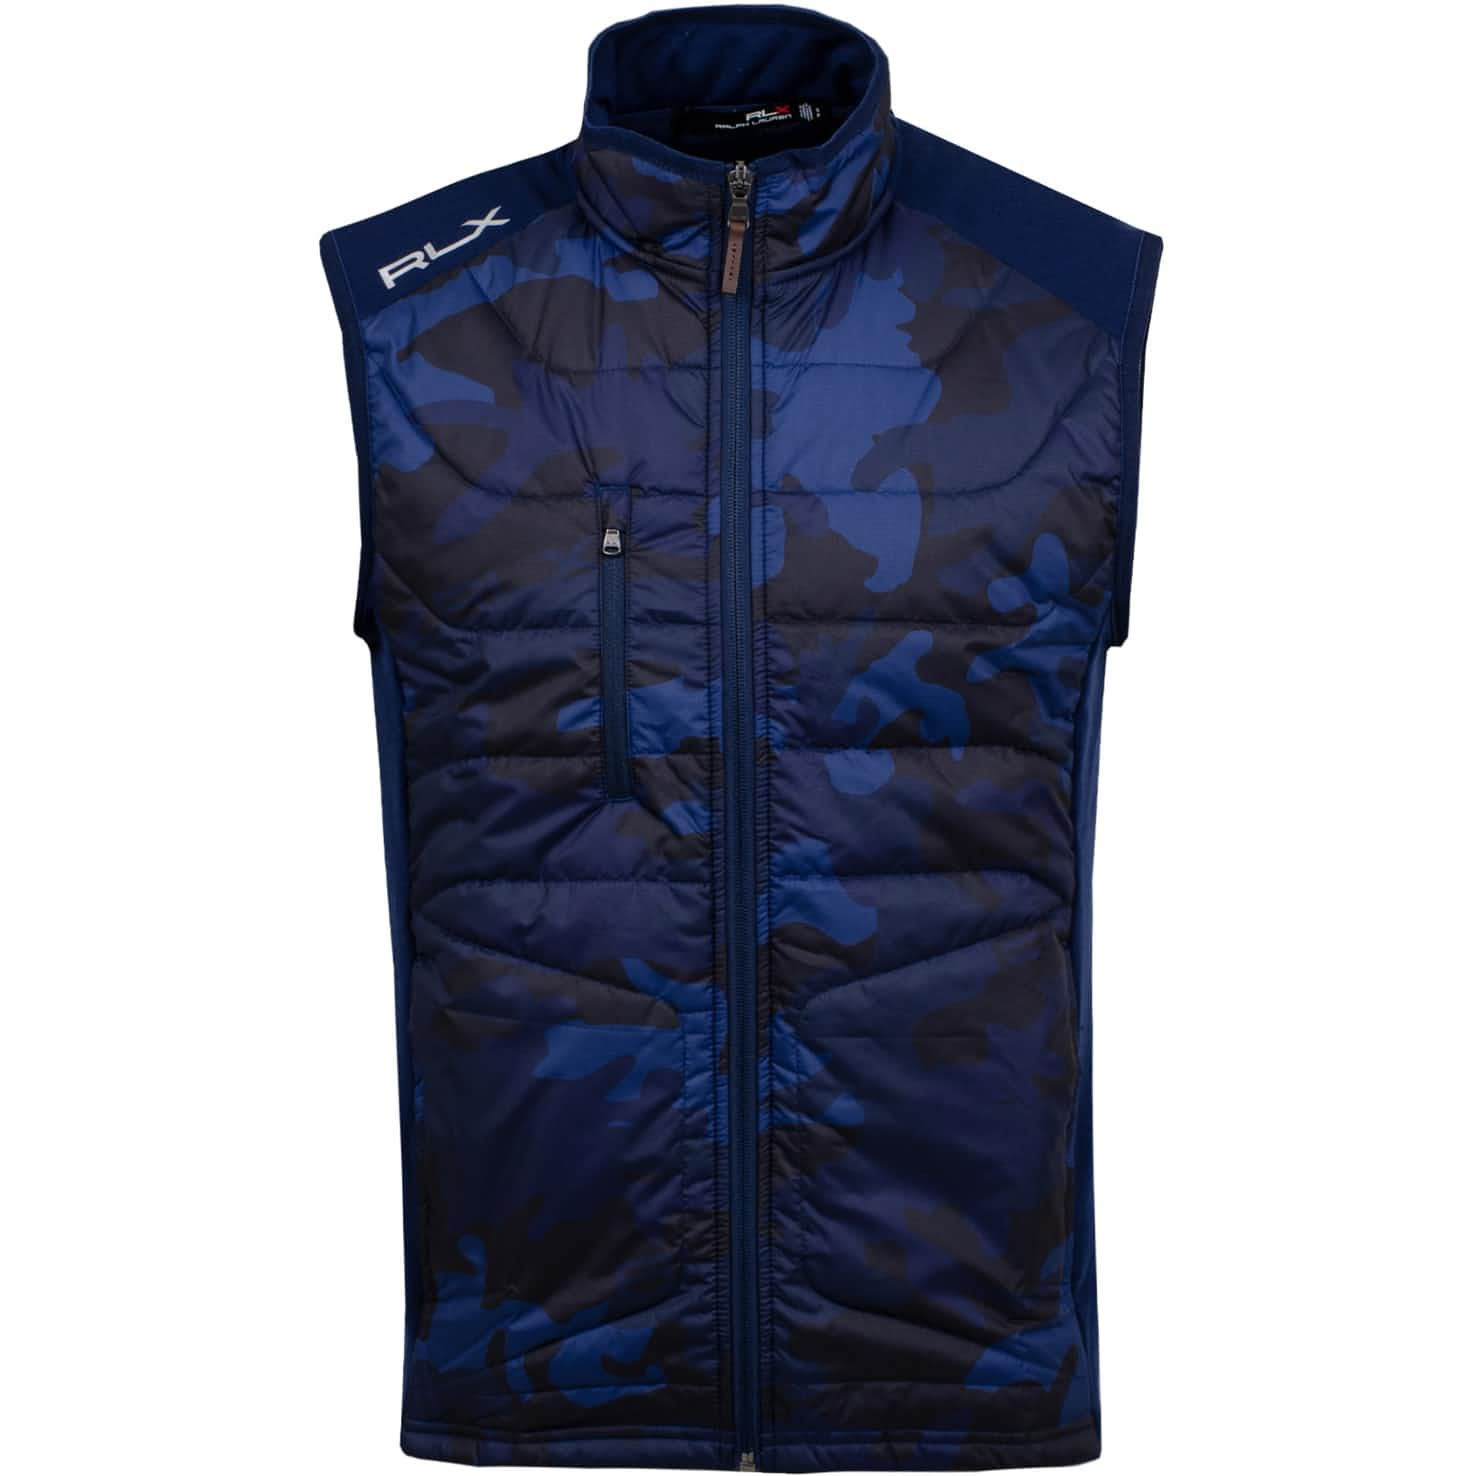 Cool Wool Vest French Navy Camo - SS20